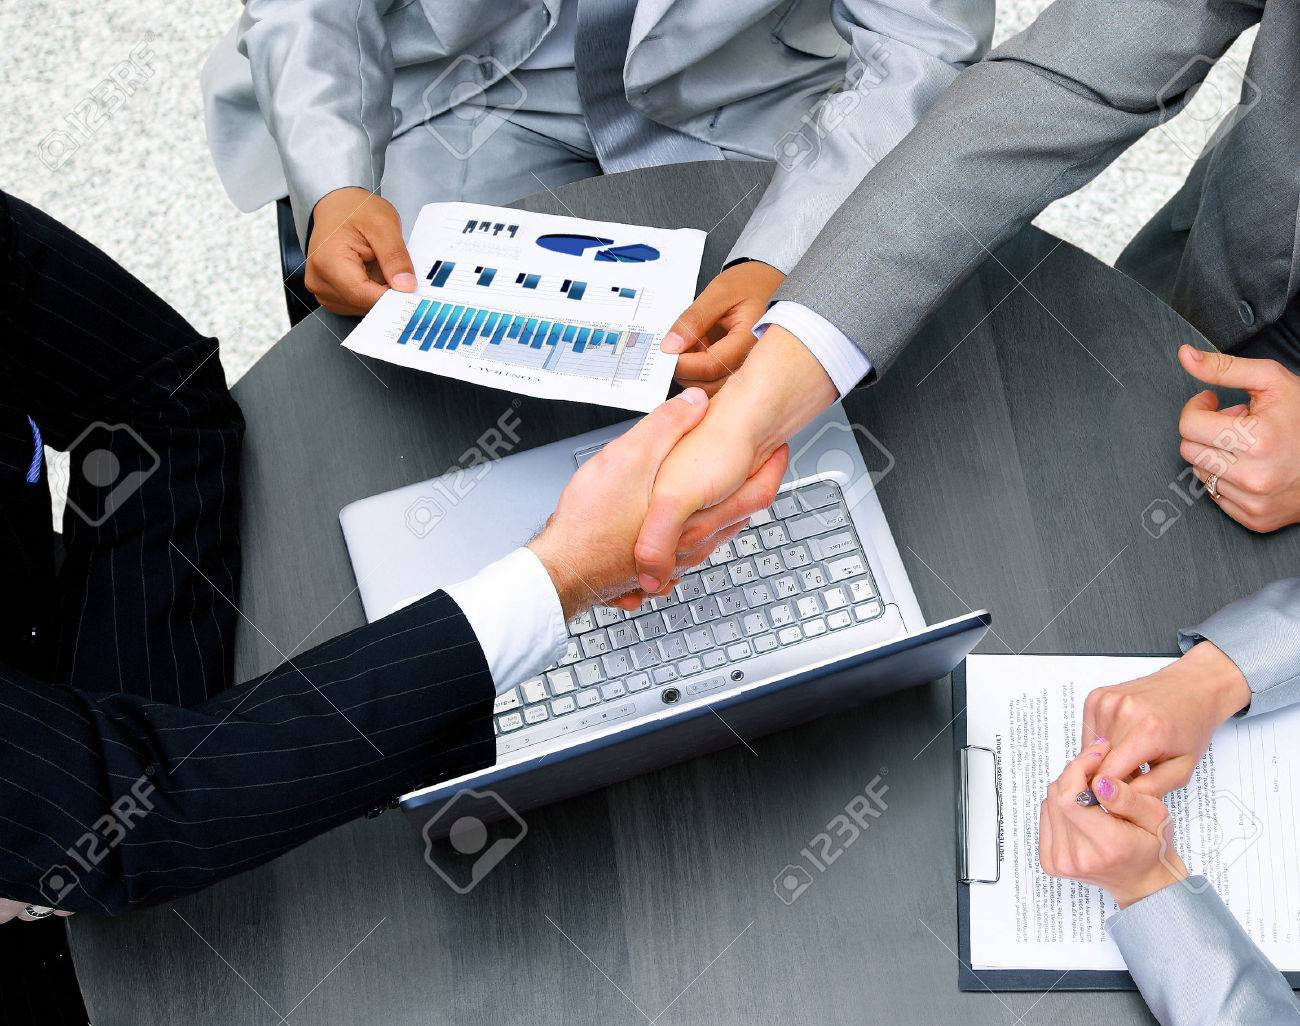 Business people shaking hands, finishing up a meeting - 22518125